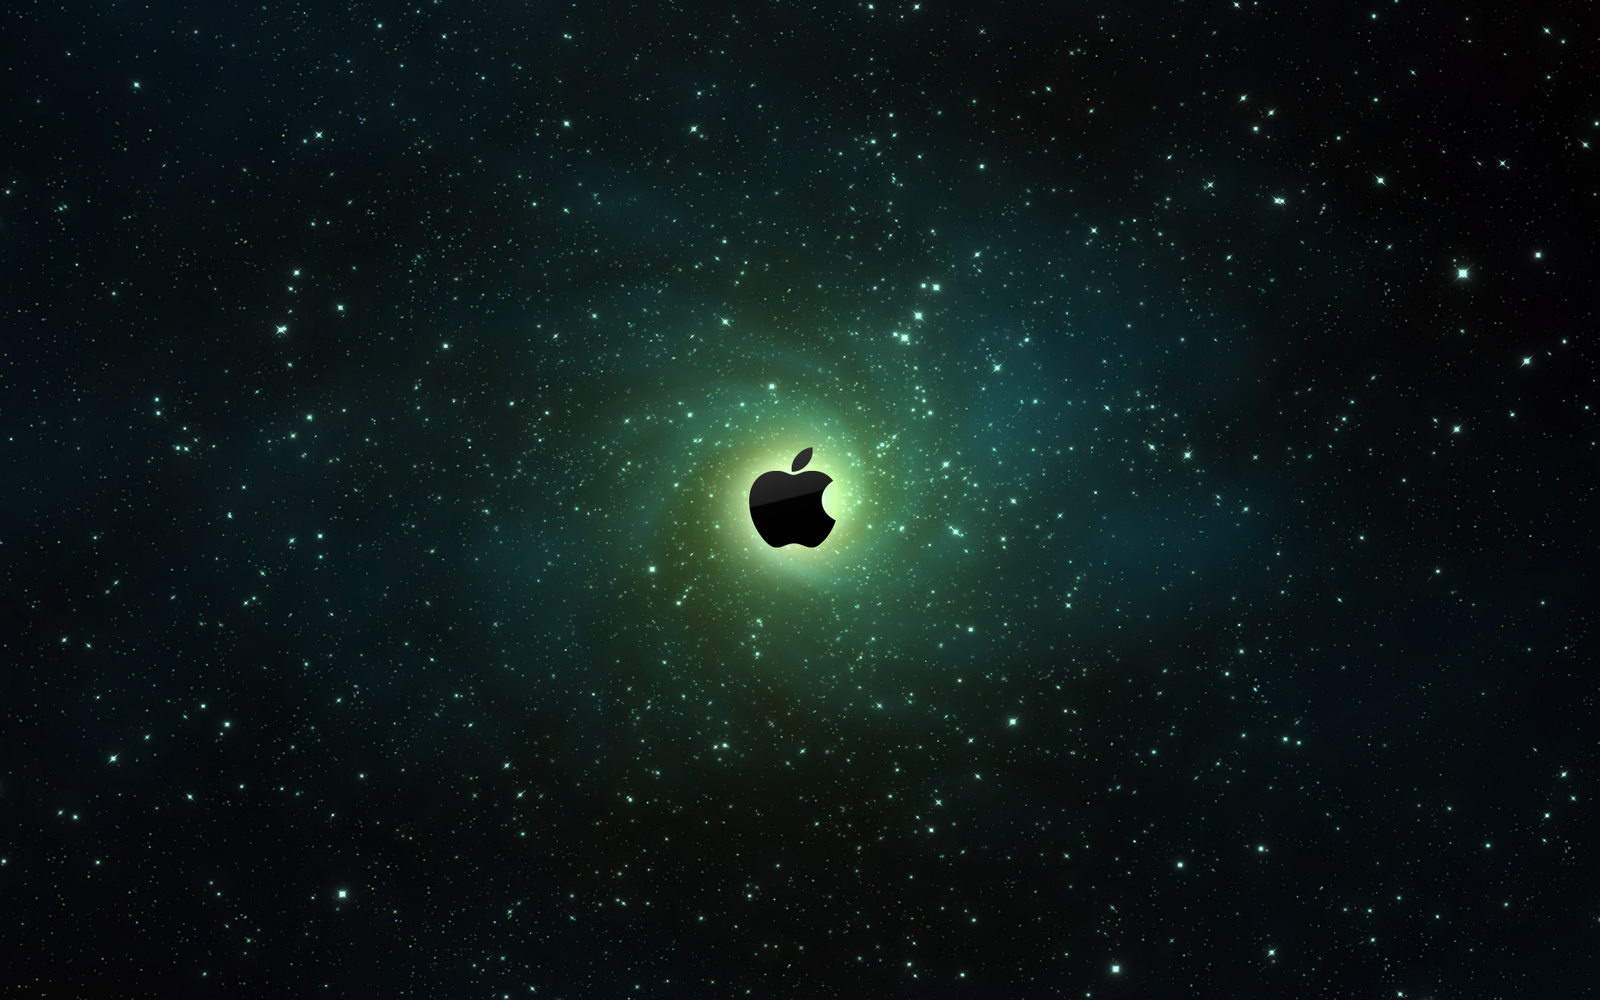 Halloween Apple Wallpapers - Wallpaper Cave